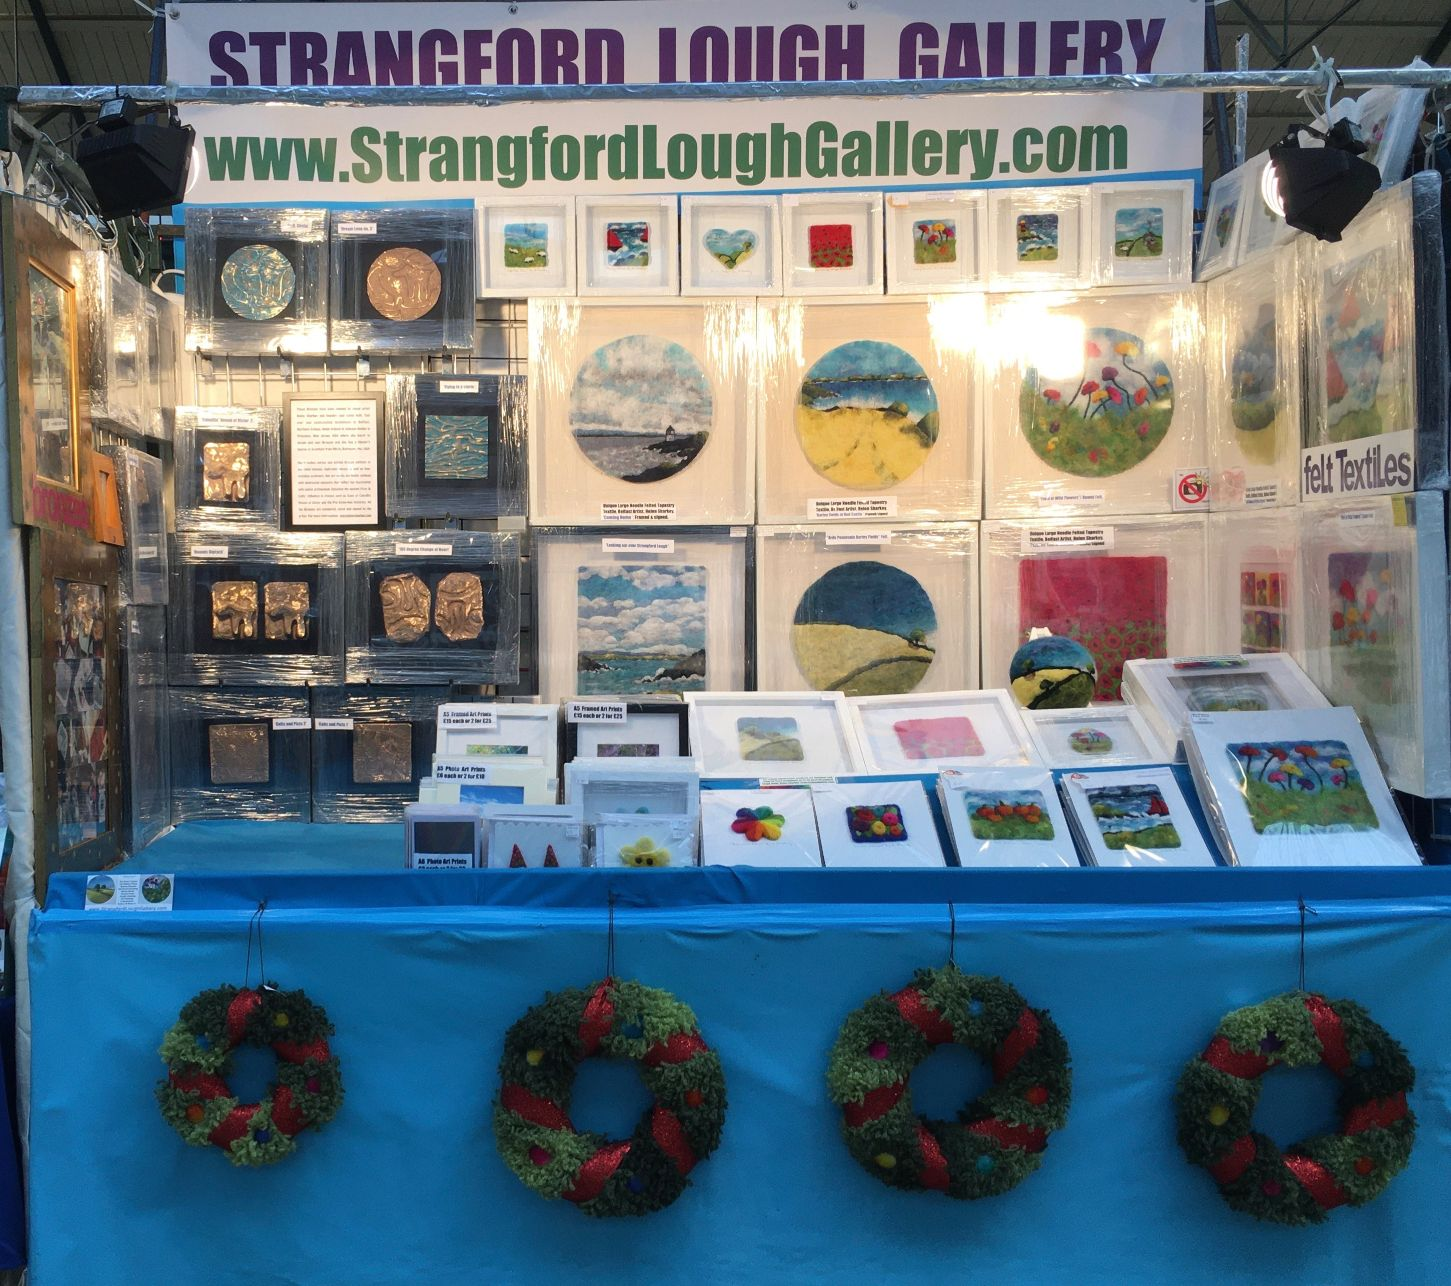 Strangford Lough Gallery at St. George's Market, Belfast, NI. Oct 2020